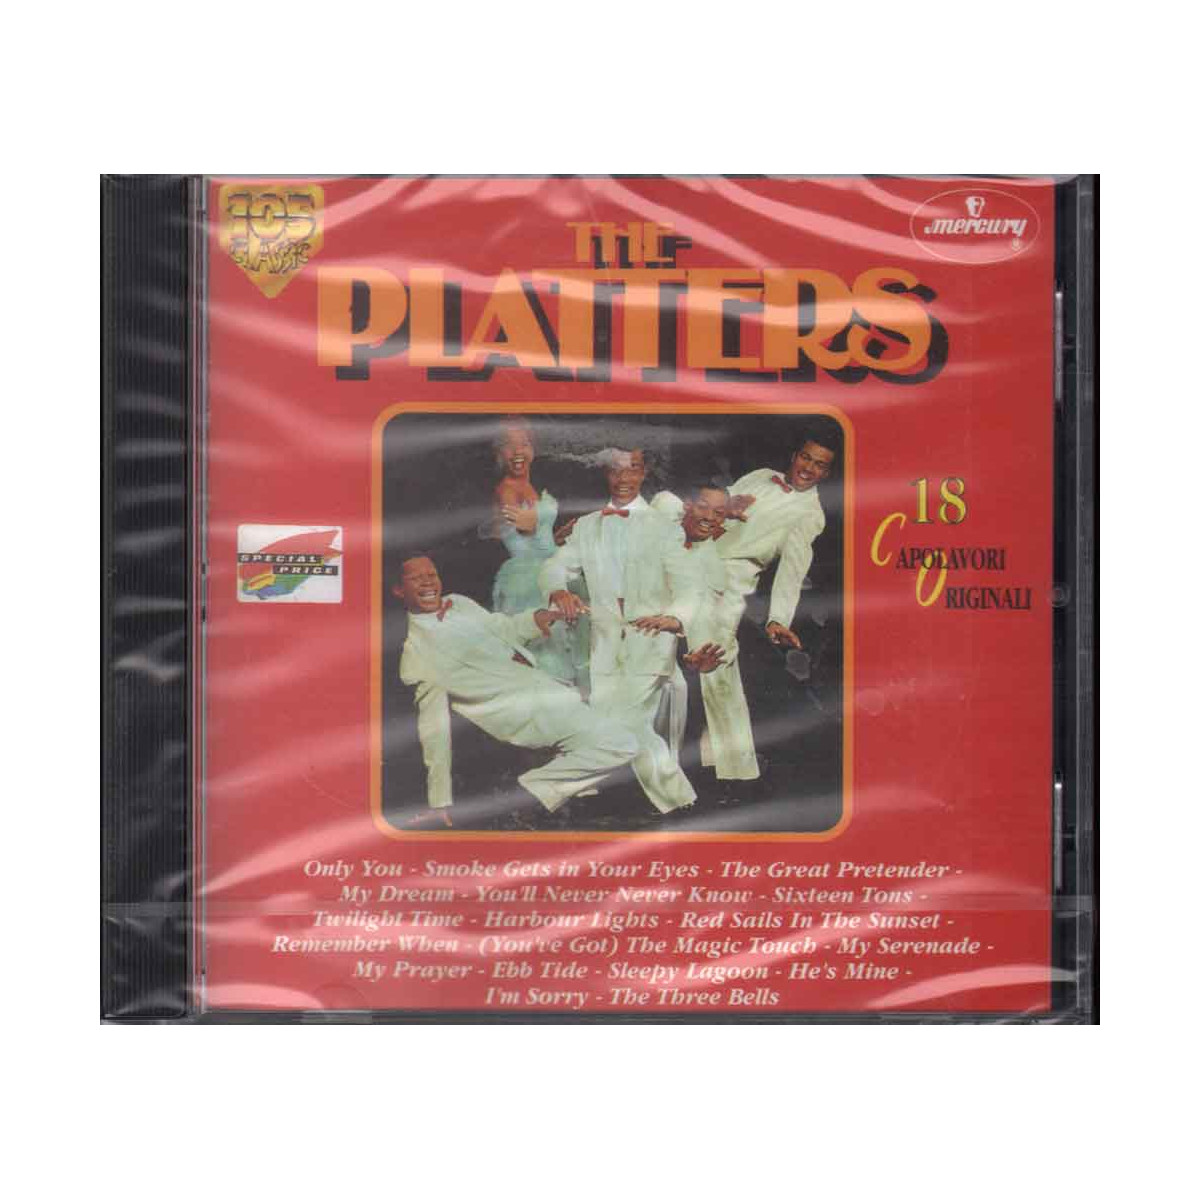 The Platters CD 18 Capolavori Originali Nuovo Sigillato 0042284836029